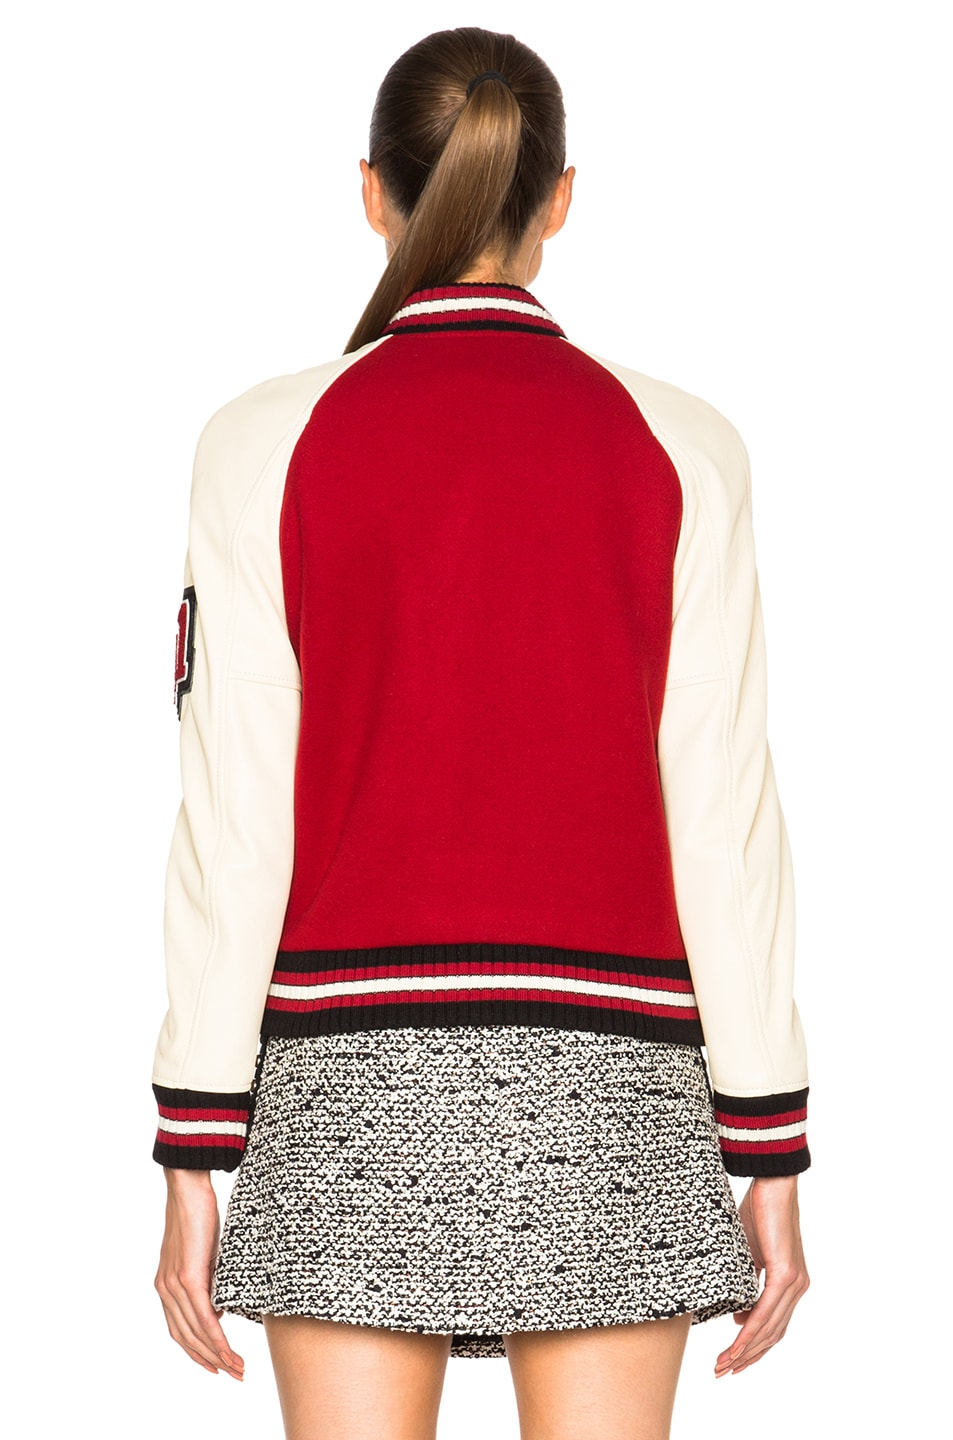 Image 5 of Coach 1941 Essential Varsity Jacket in Red